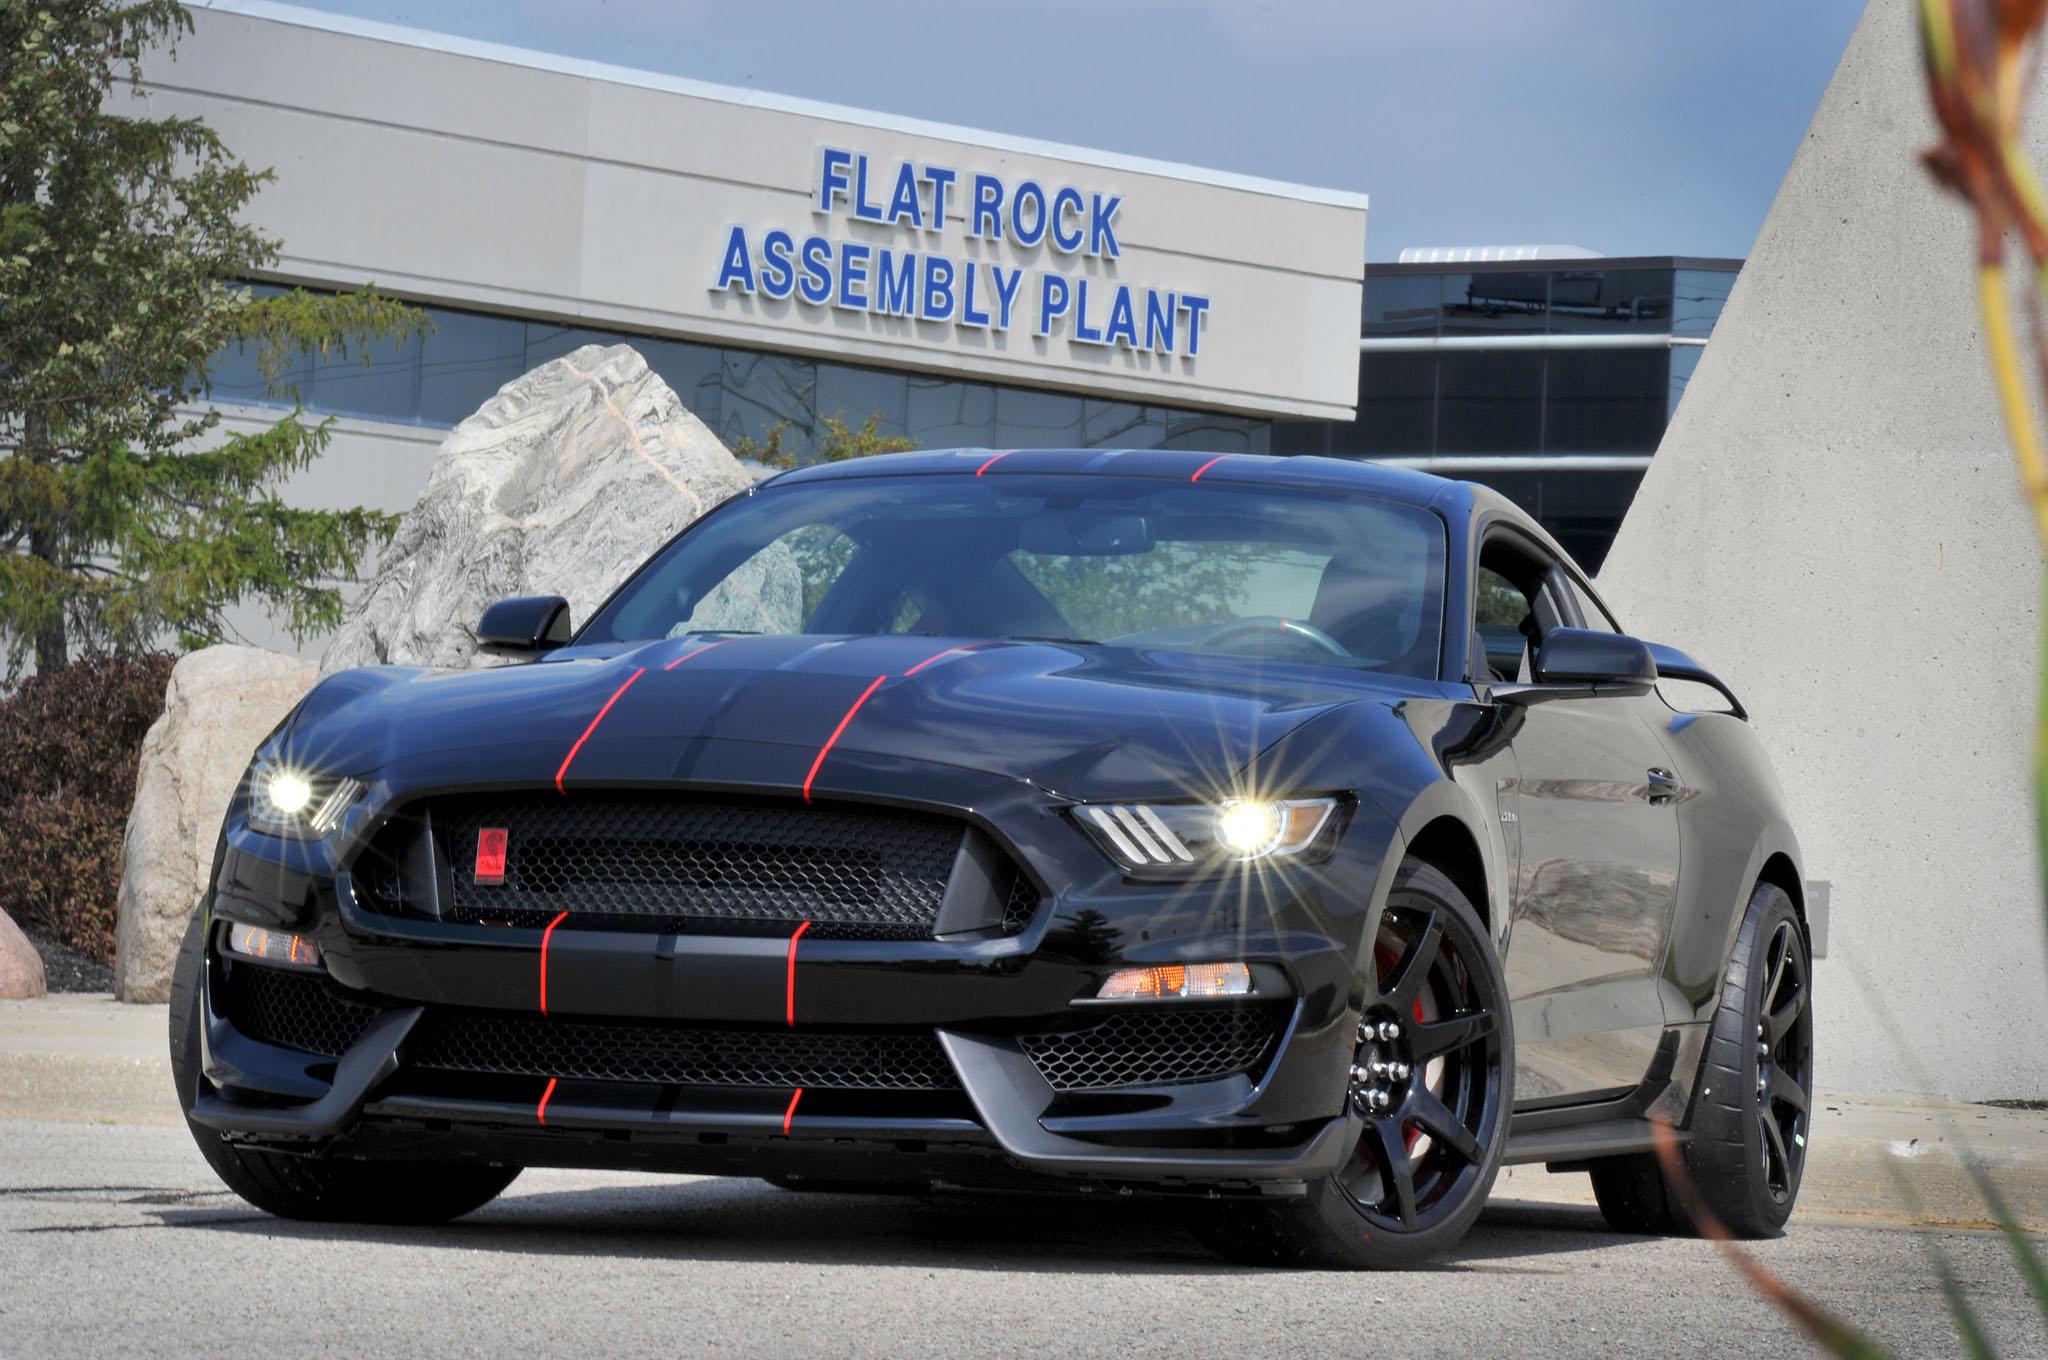 2015 Ford Shelby Gt350 Mustang Begins Production In Flat Rock